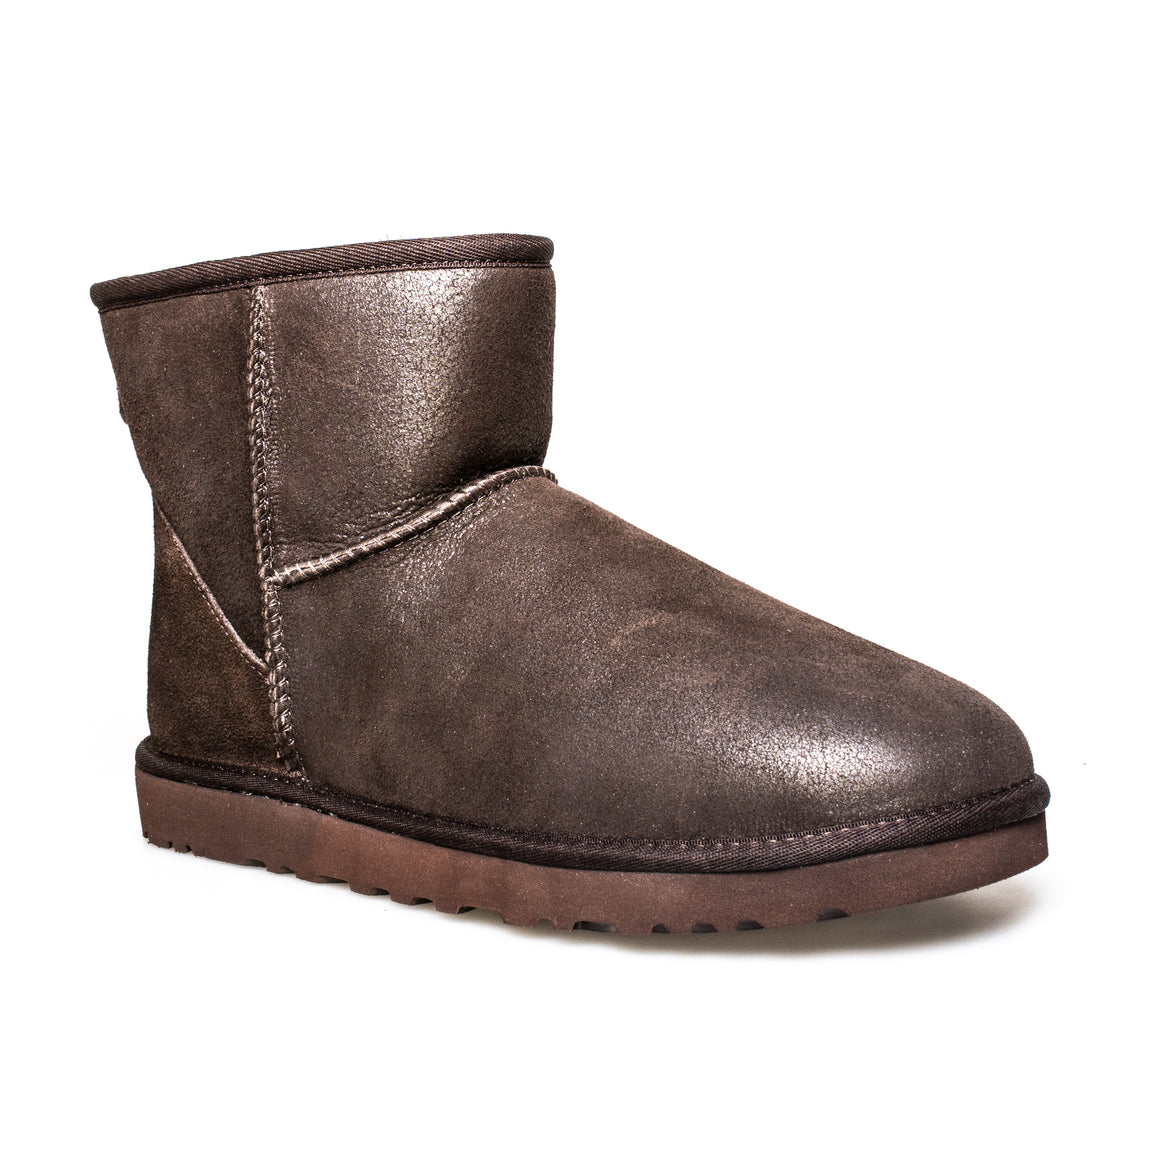 UGG Classic Mini Bomber Jacket Chocolate Boots - Men's